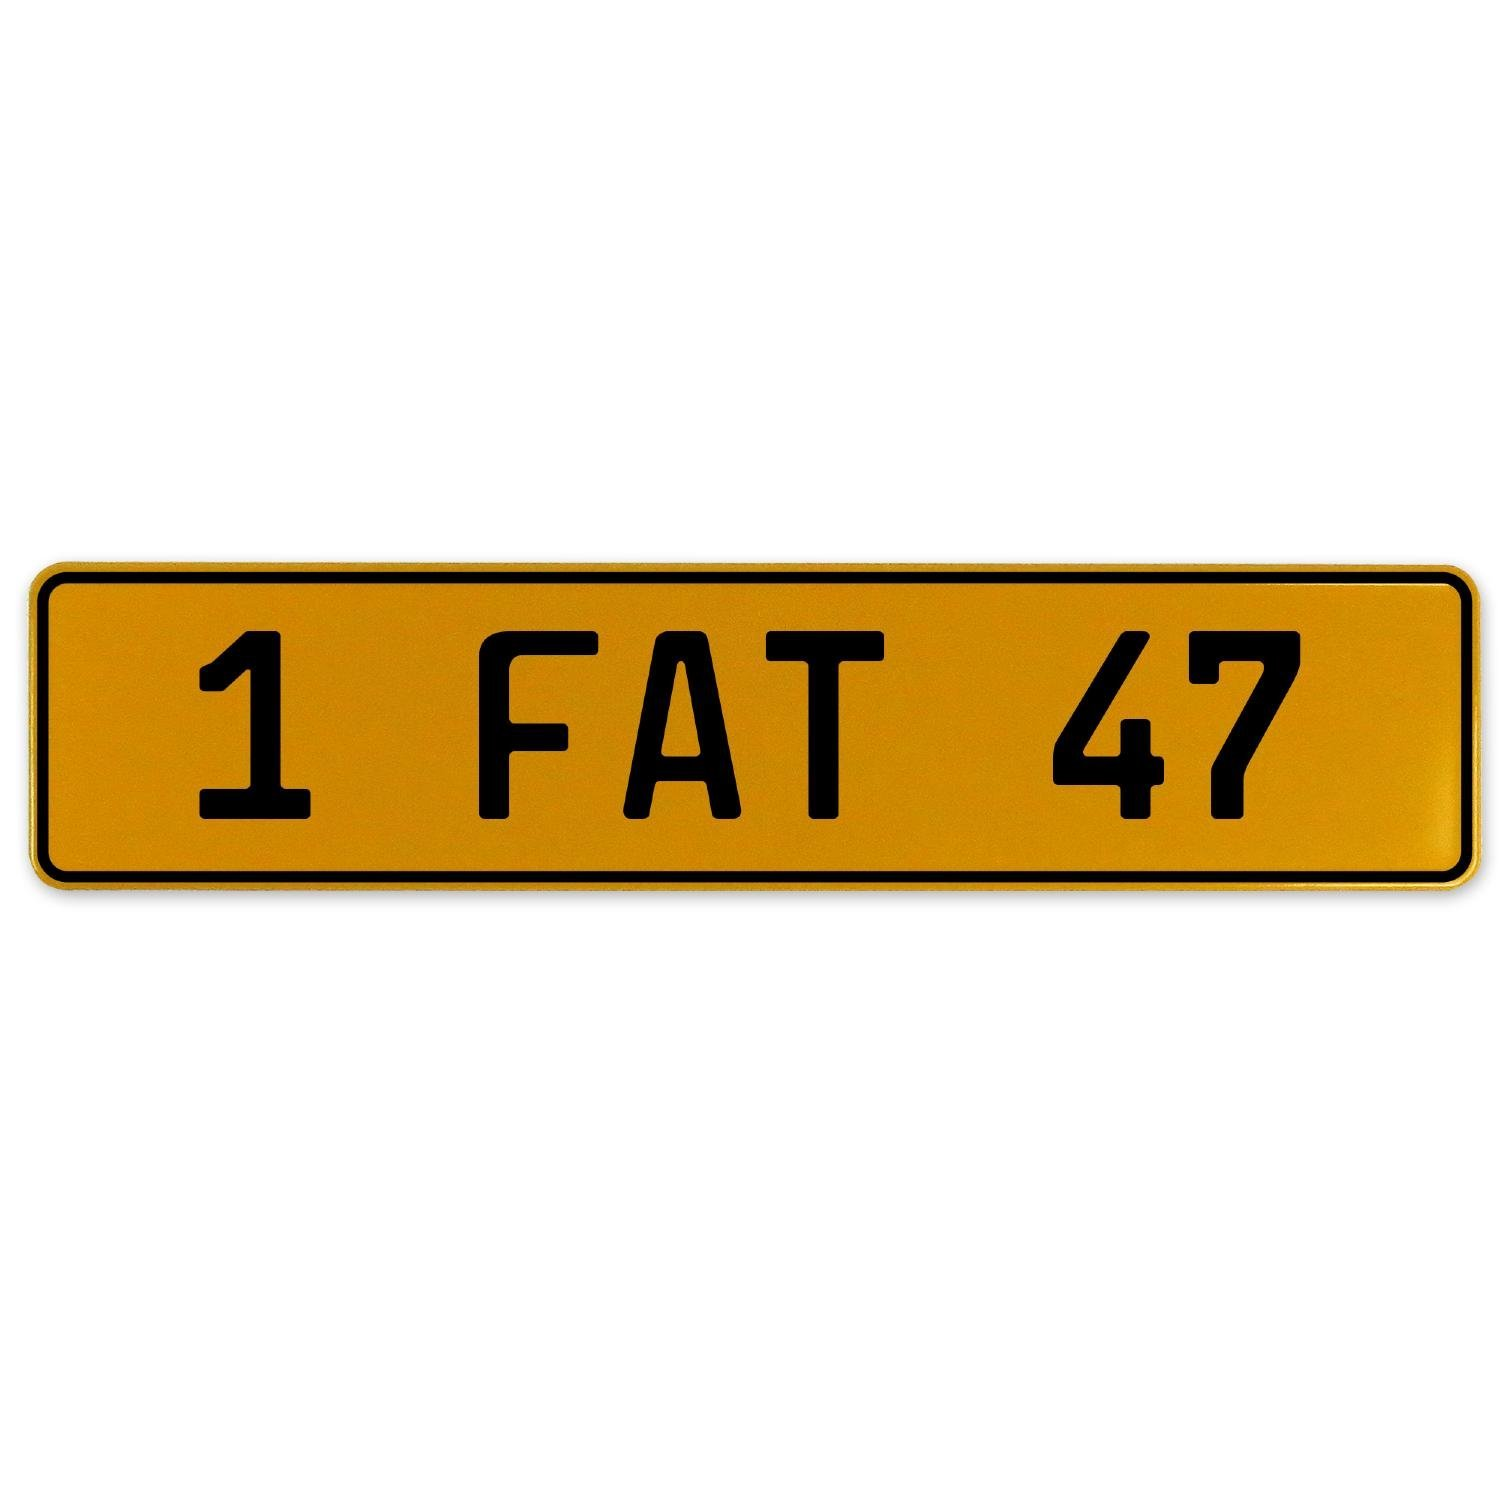 1 Fat 47 Vintage Parts 559693 Yellow Stamped Aluminum European Plate